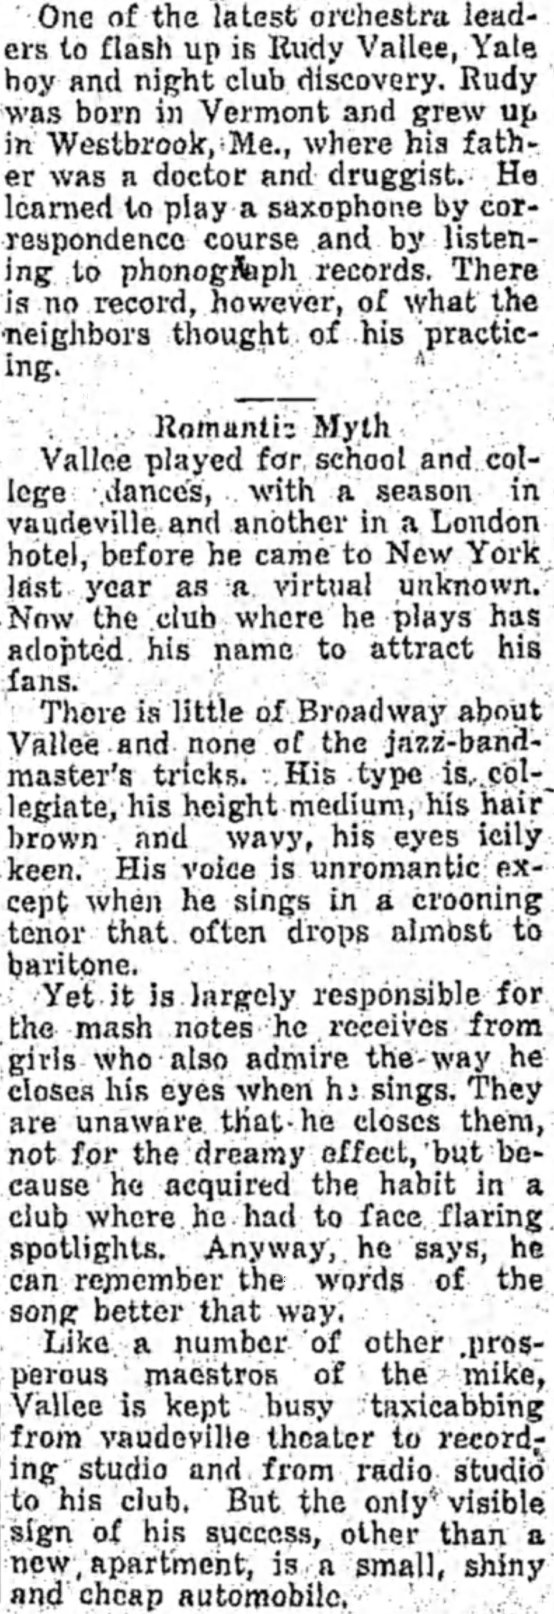 rudy-vallee-290408-about-new-york-by-richard-g-massock-miami-news-record-OK-p4